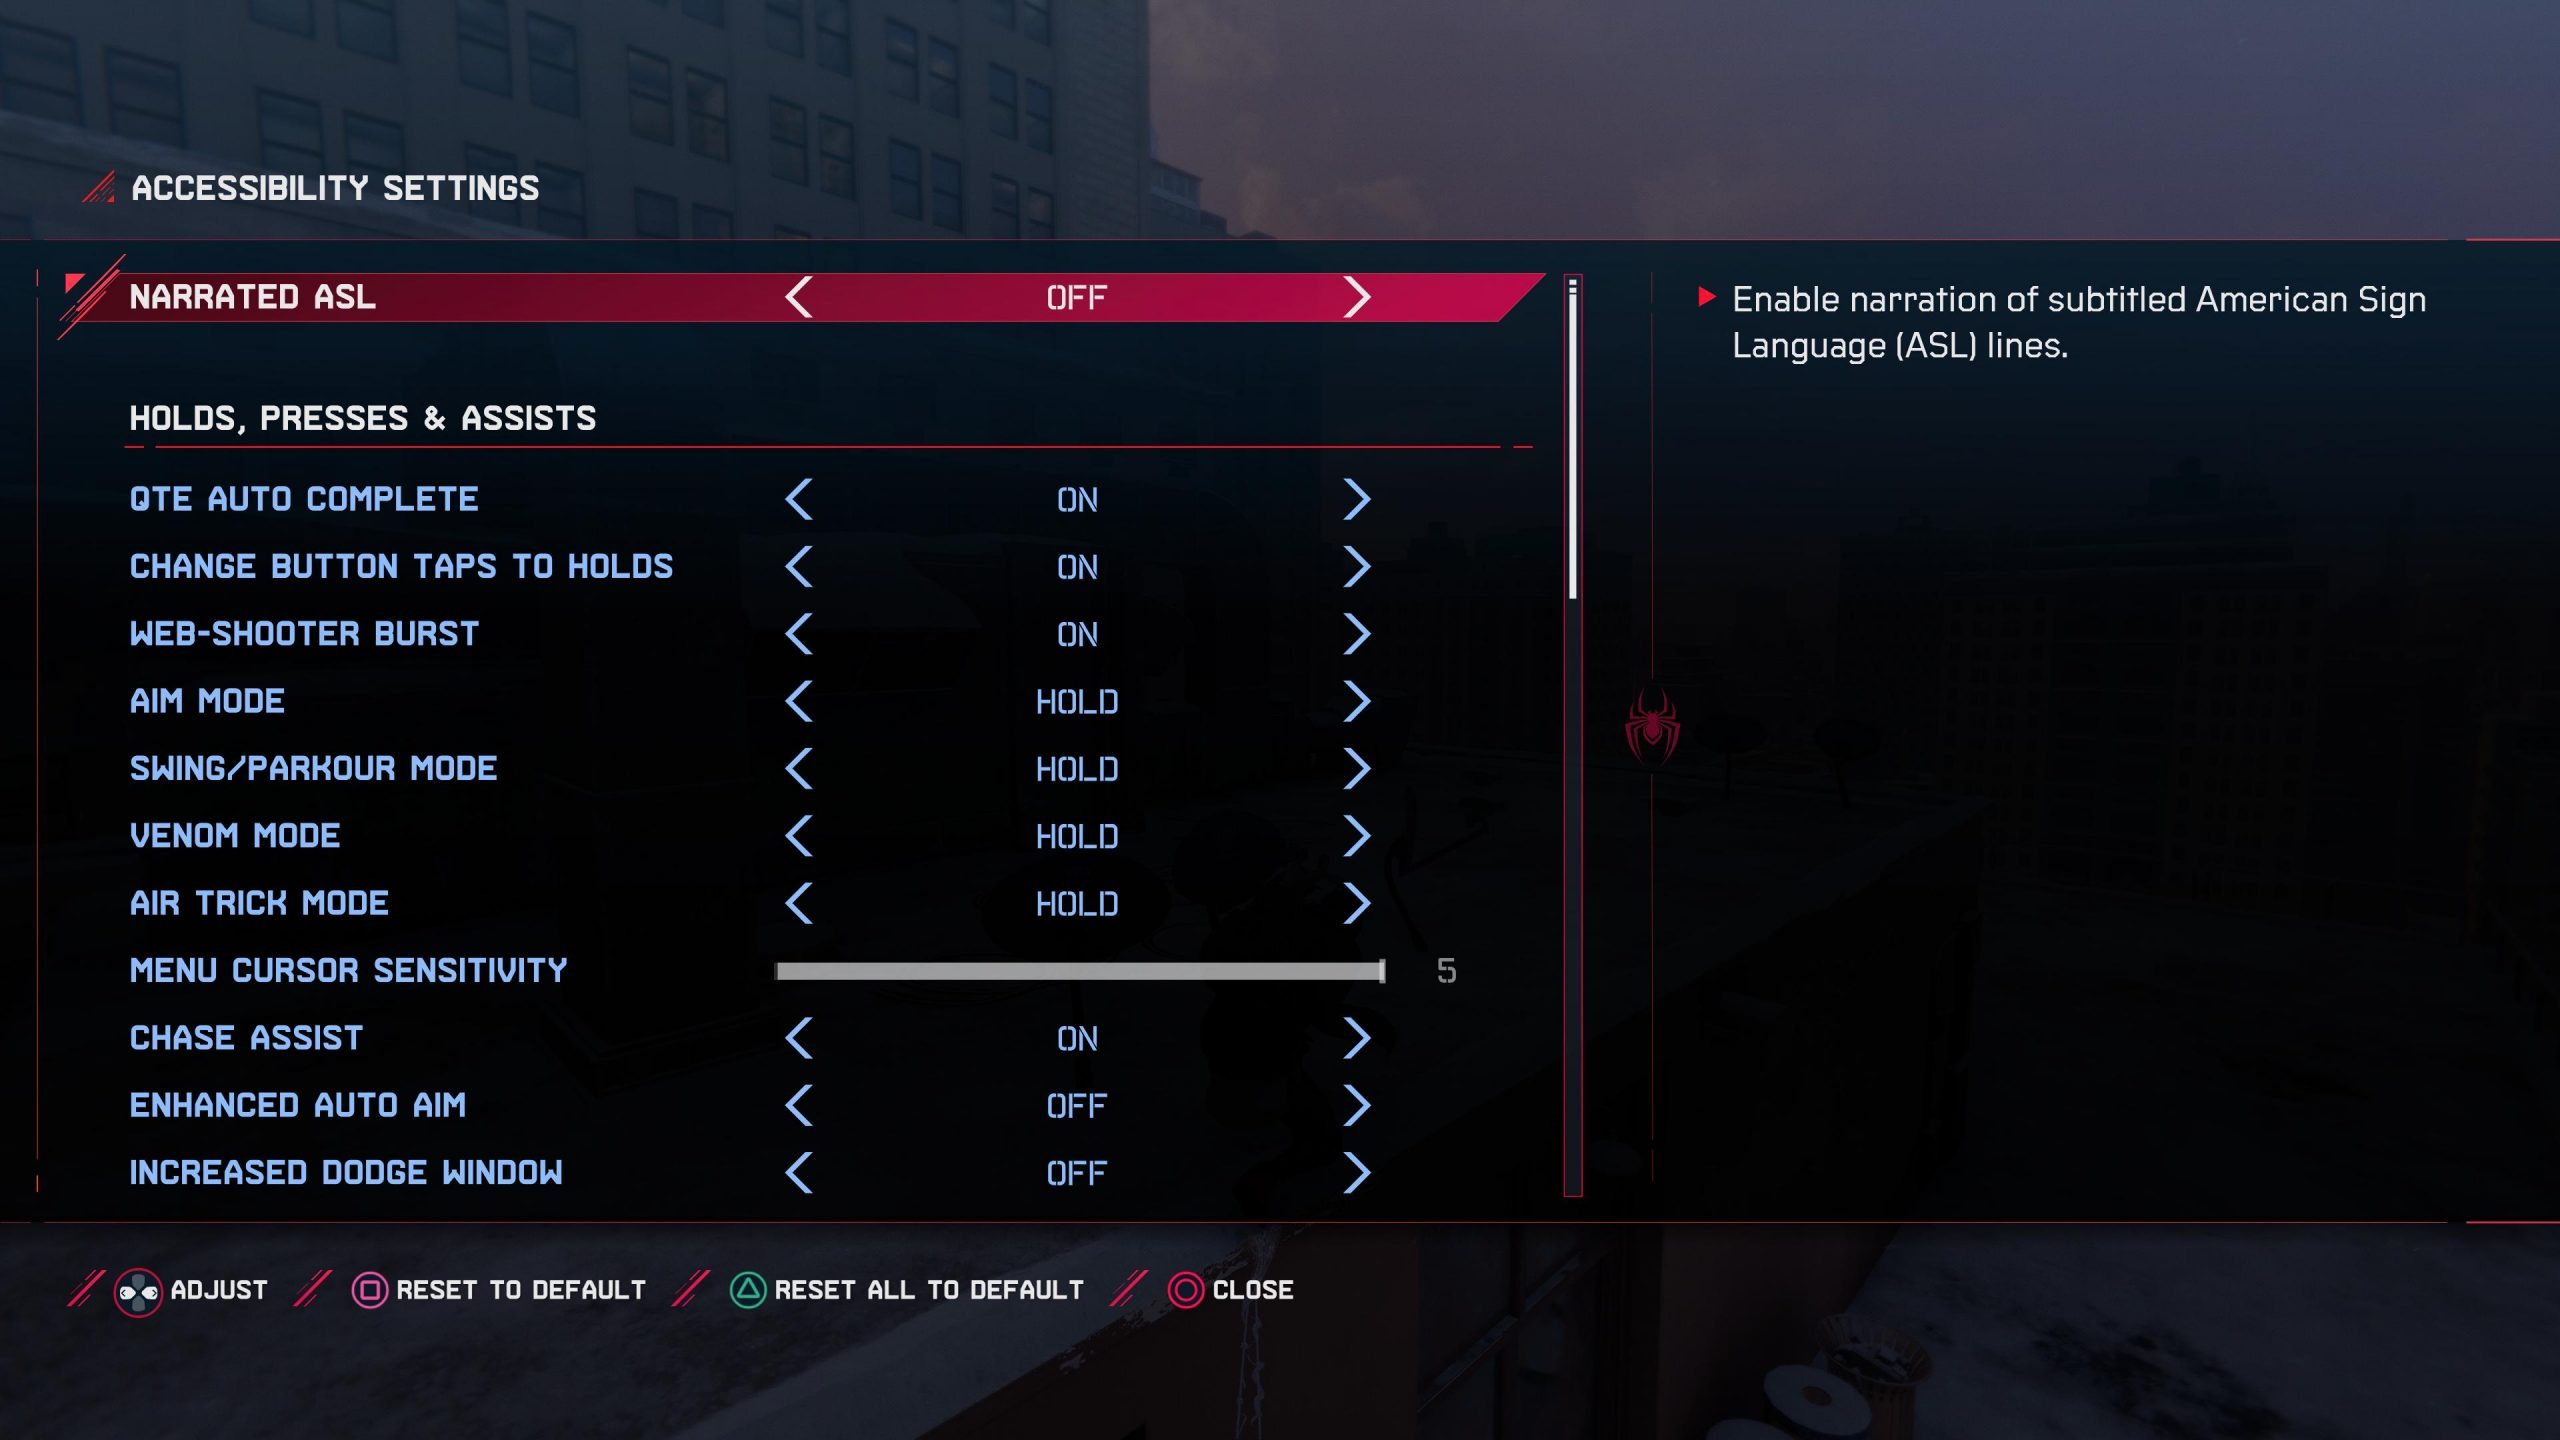 A screenshot showing the accessibility settings